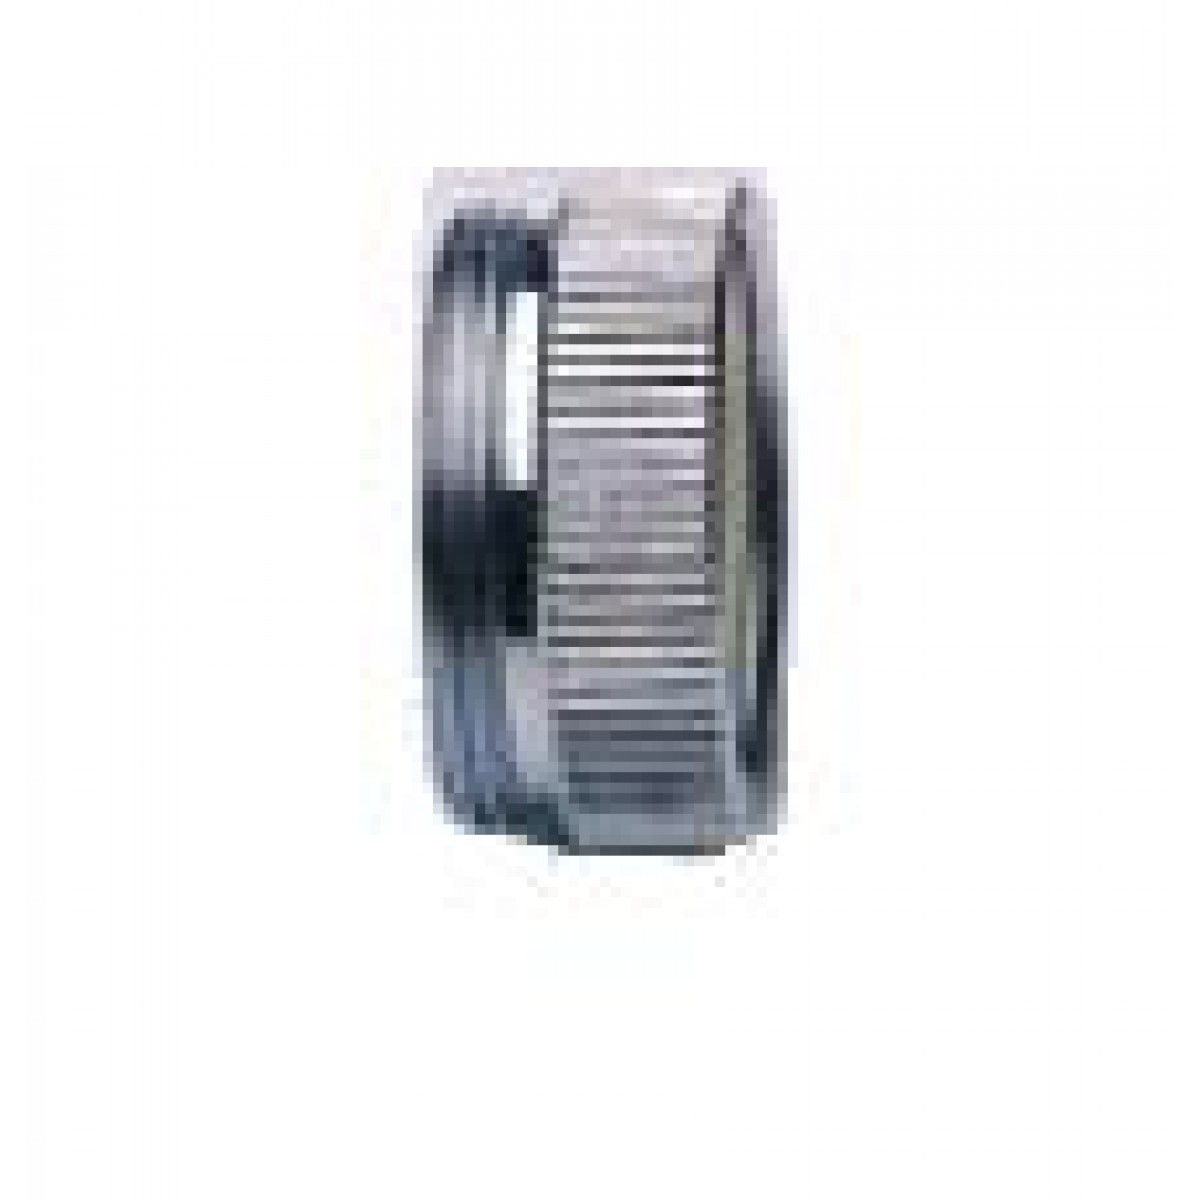 Qmp509a Faucet Adapter Extension For Sprayer Faucets